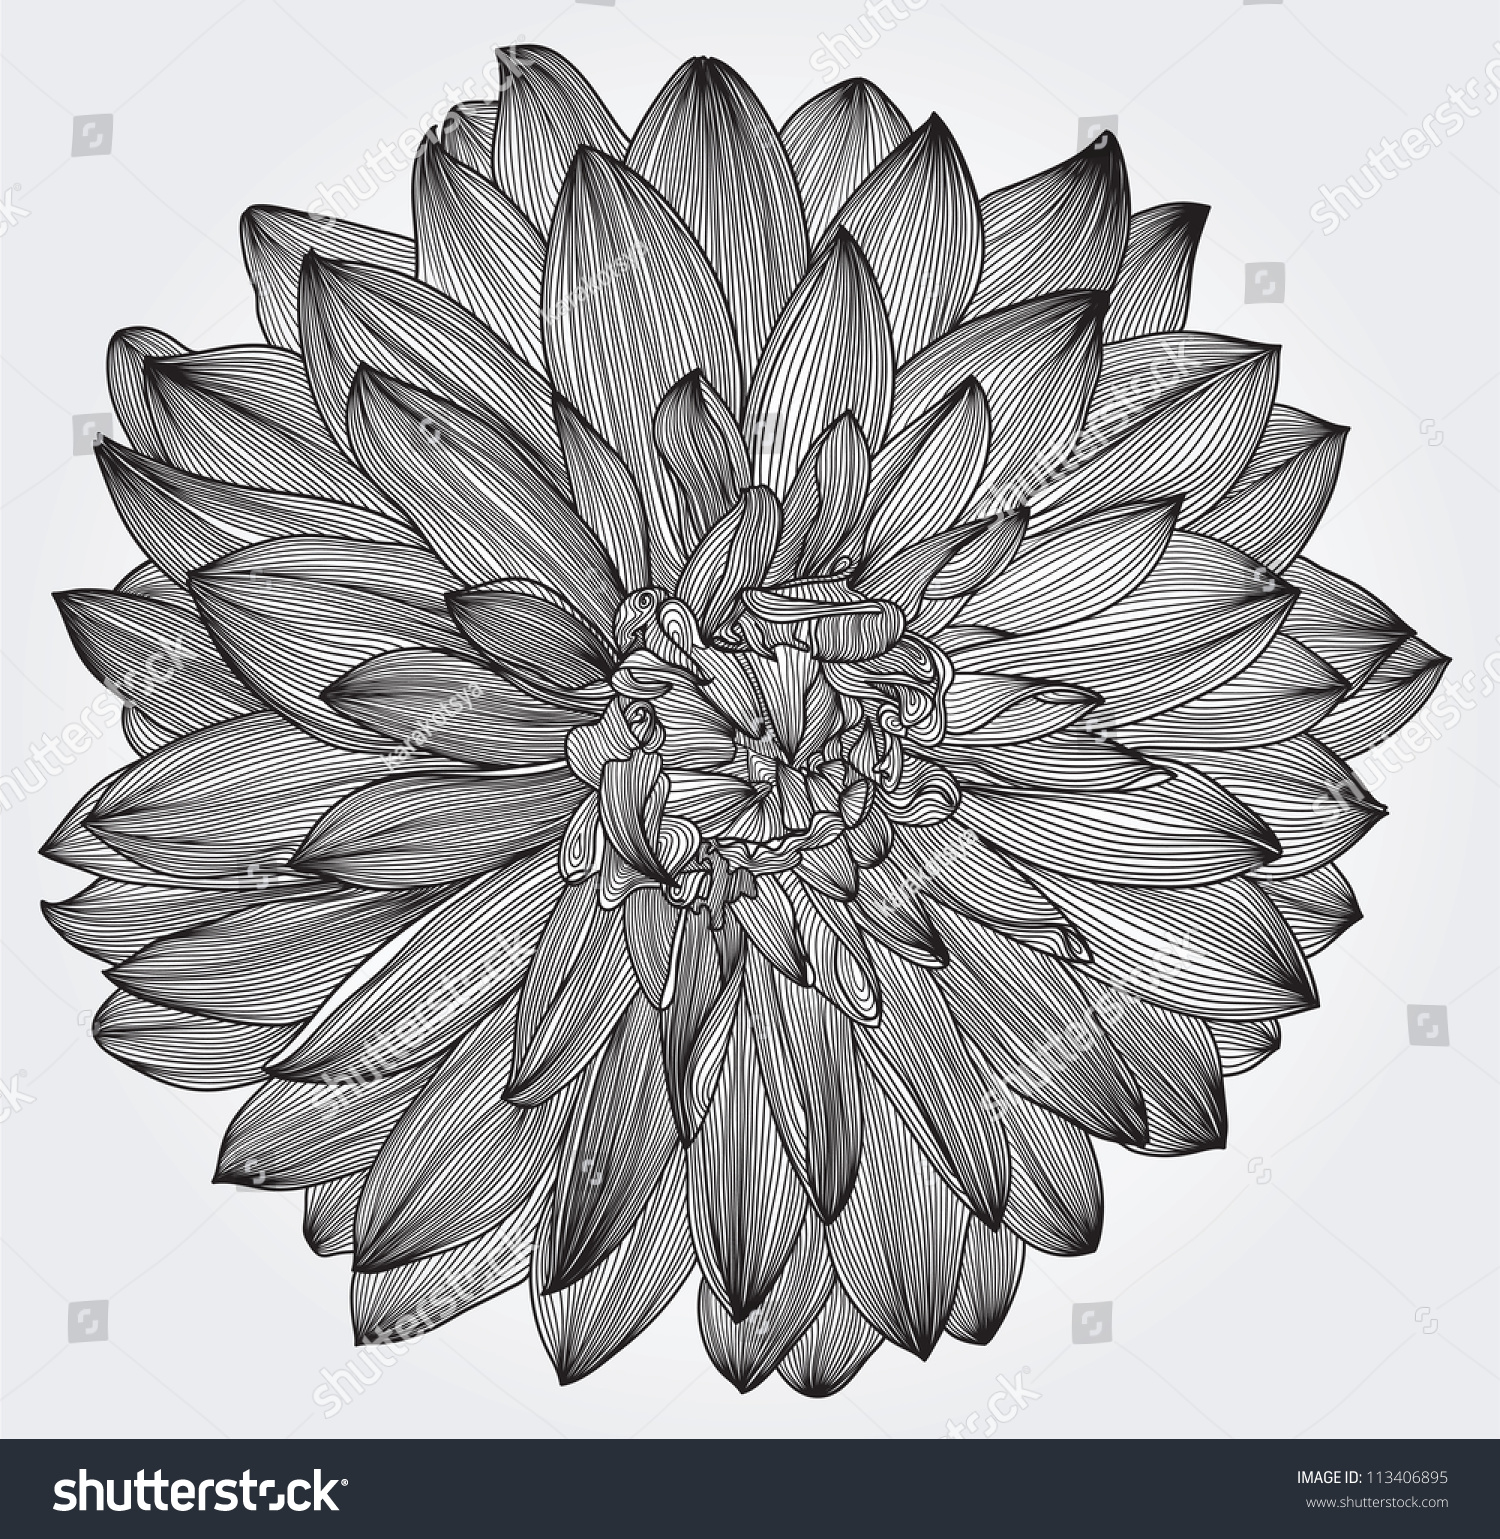 Ink drawing black dahlia flower element stock vector royalty free ink drawing of black dahlia flower element for your design engraving style izmirmasajfo